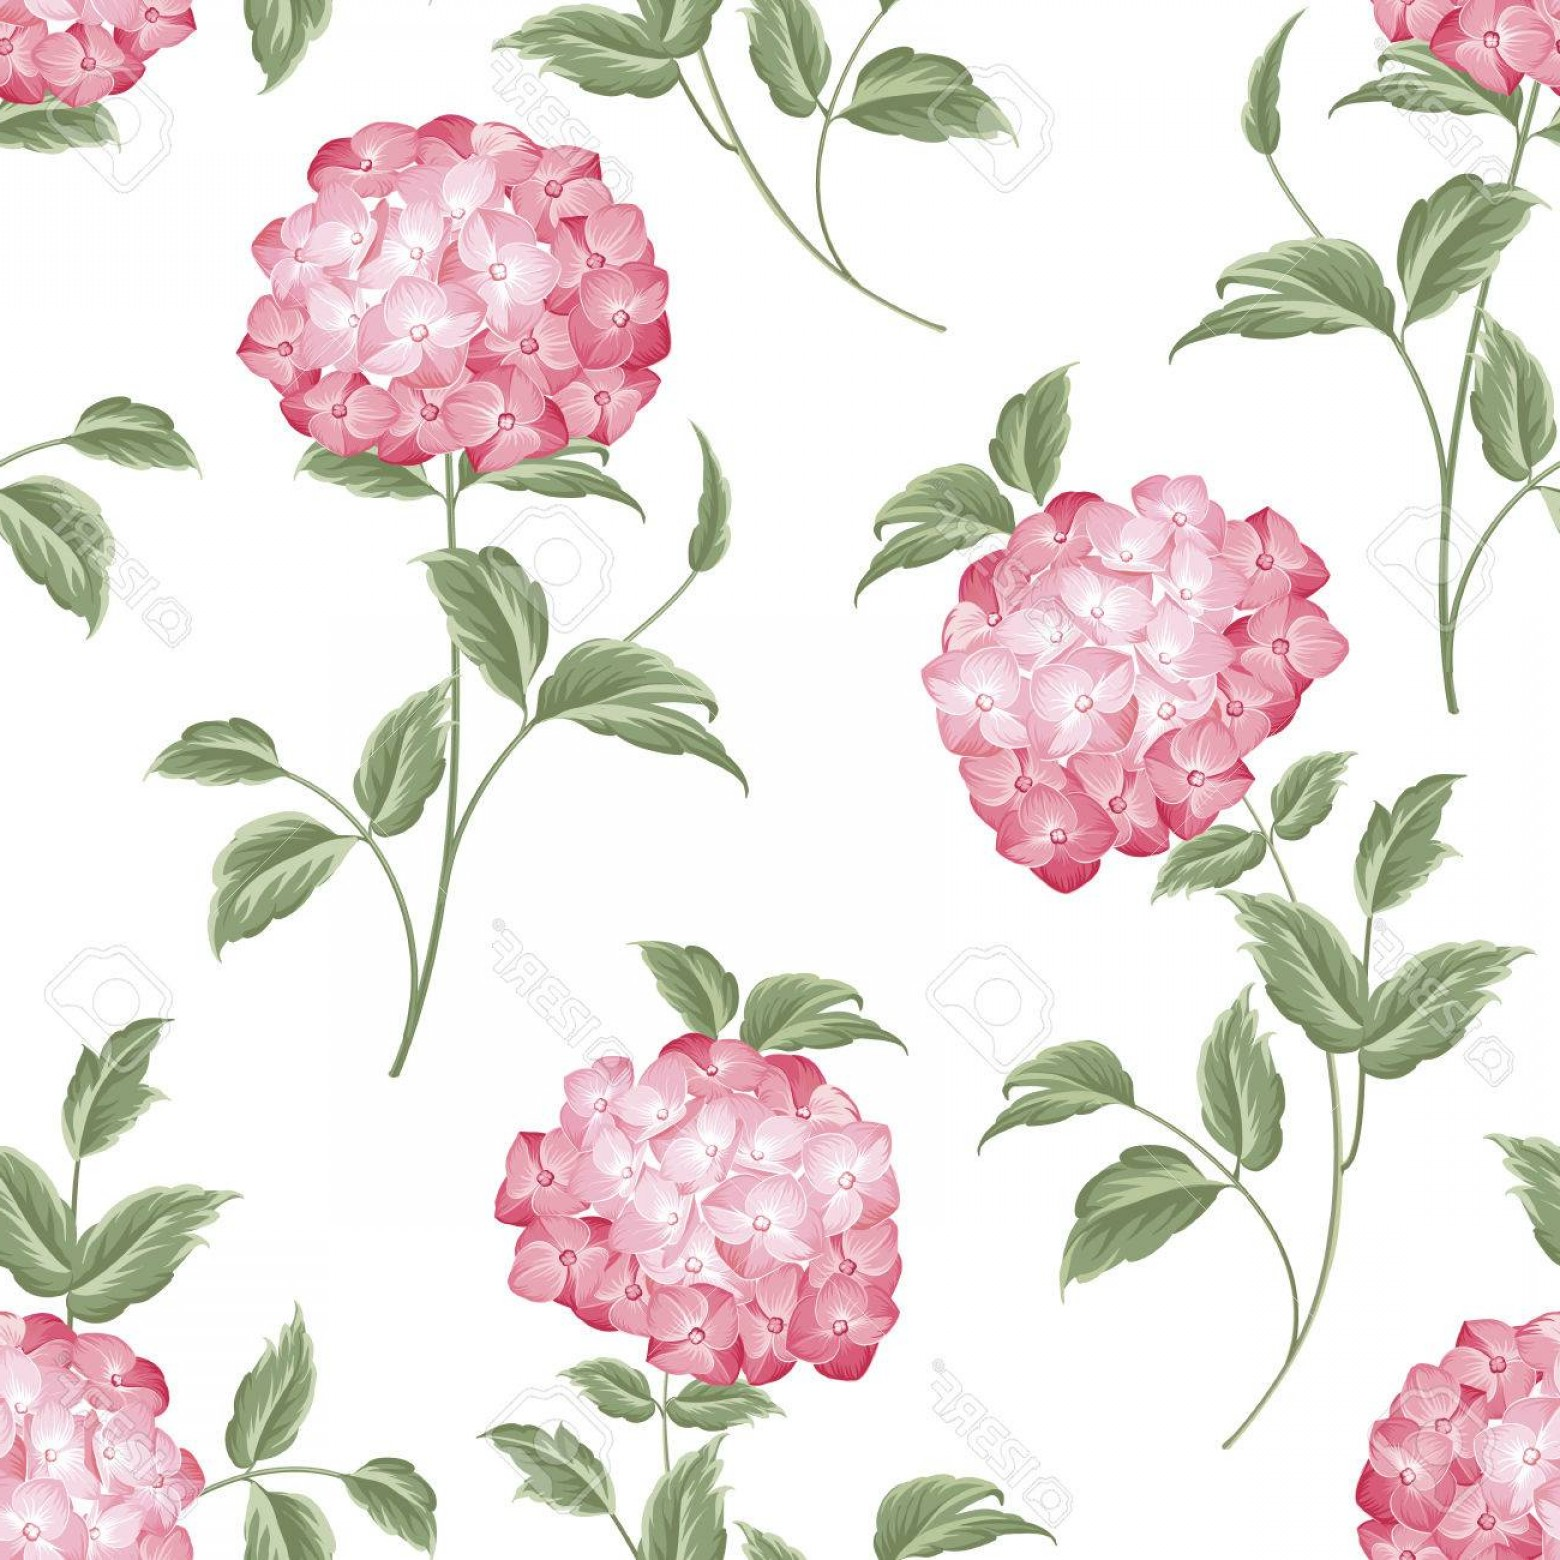 Vector Mop Flower: Photostock Vector Pink Flowers Of Hydrangea On Seamless Background Mop Head Hydrangea Flower Fabric Pattern Vector Ill